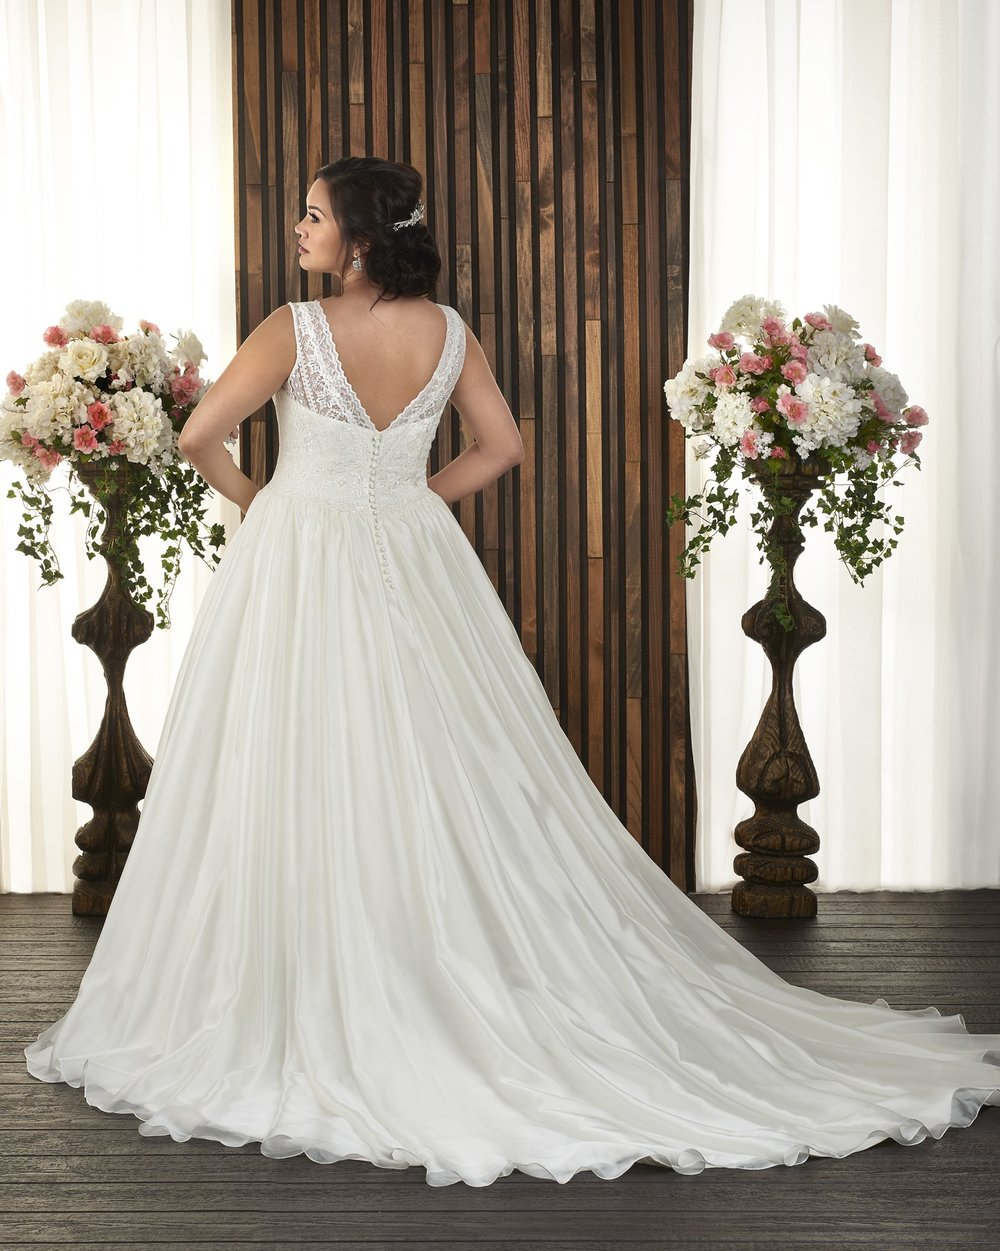 BonnyBridal-BridesbyYoung-PlusSizeWeddingDress-1720-1.jpg